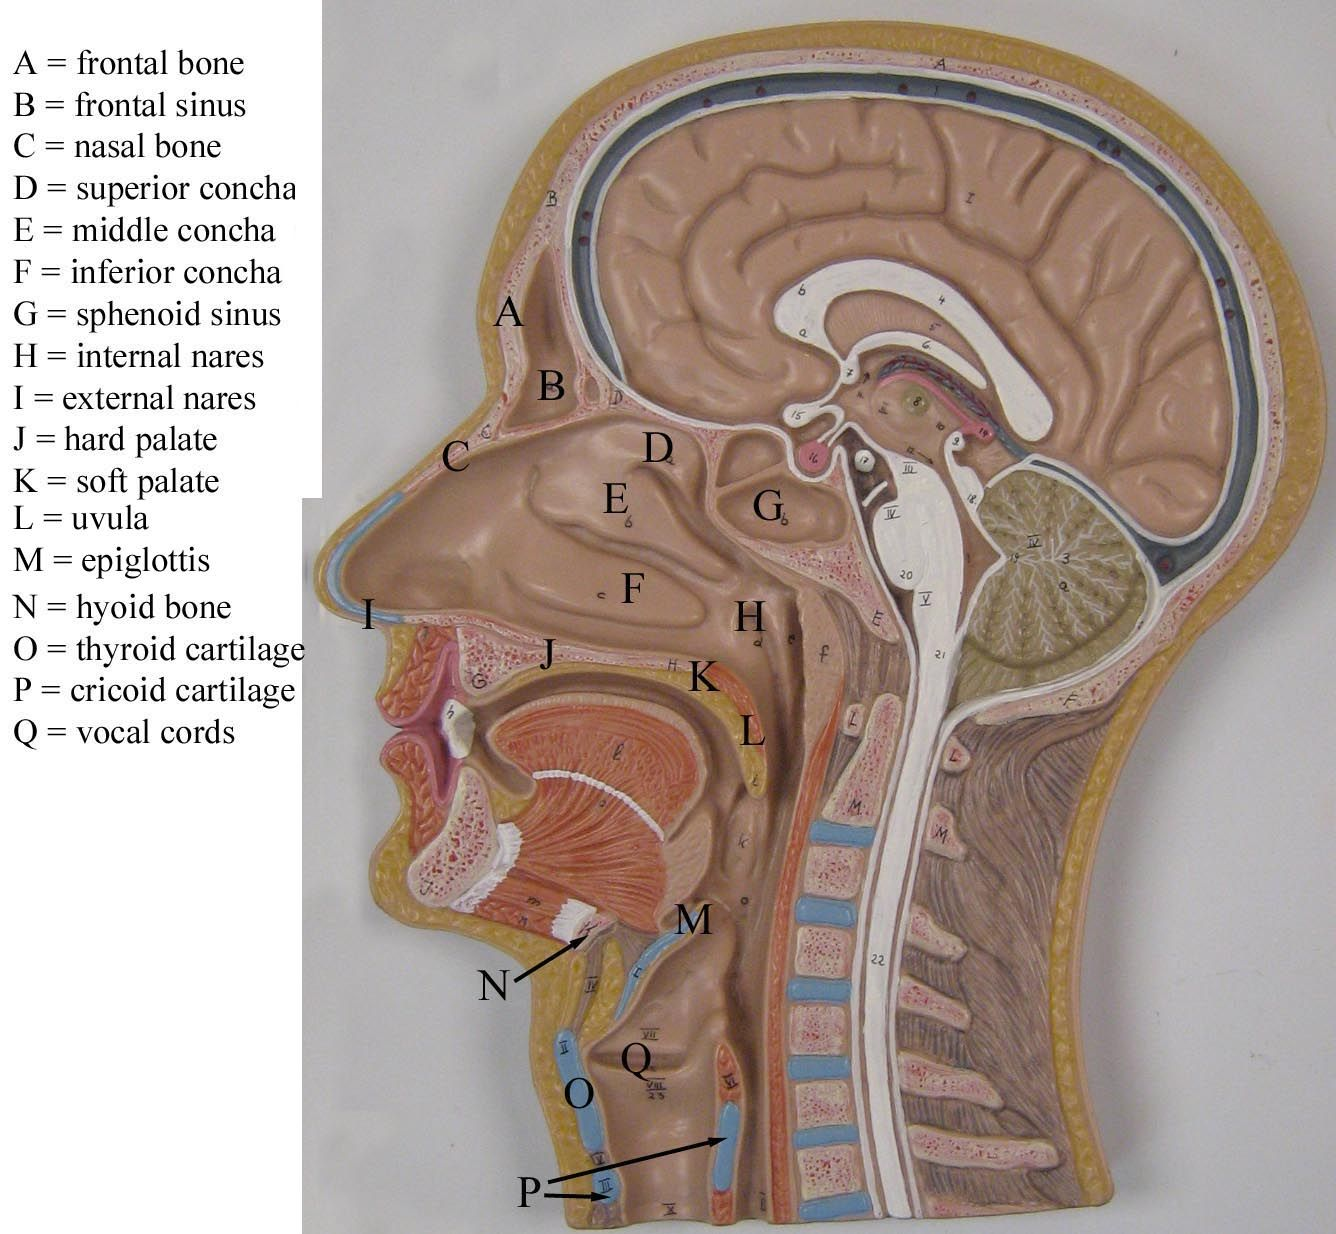 half head model labeled - Google Search | anatomy | Pinterest ...